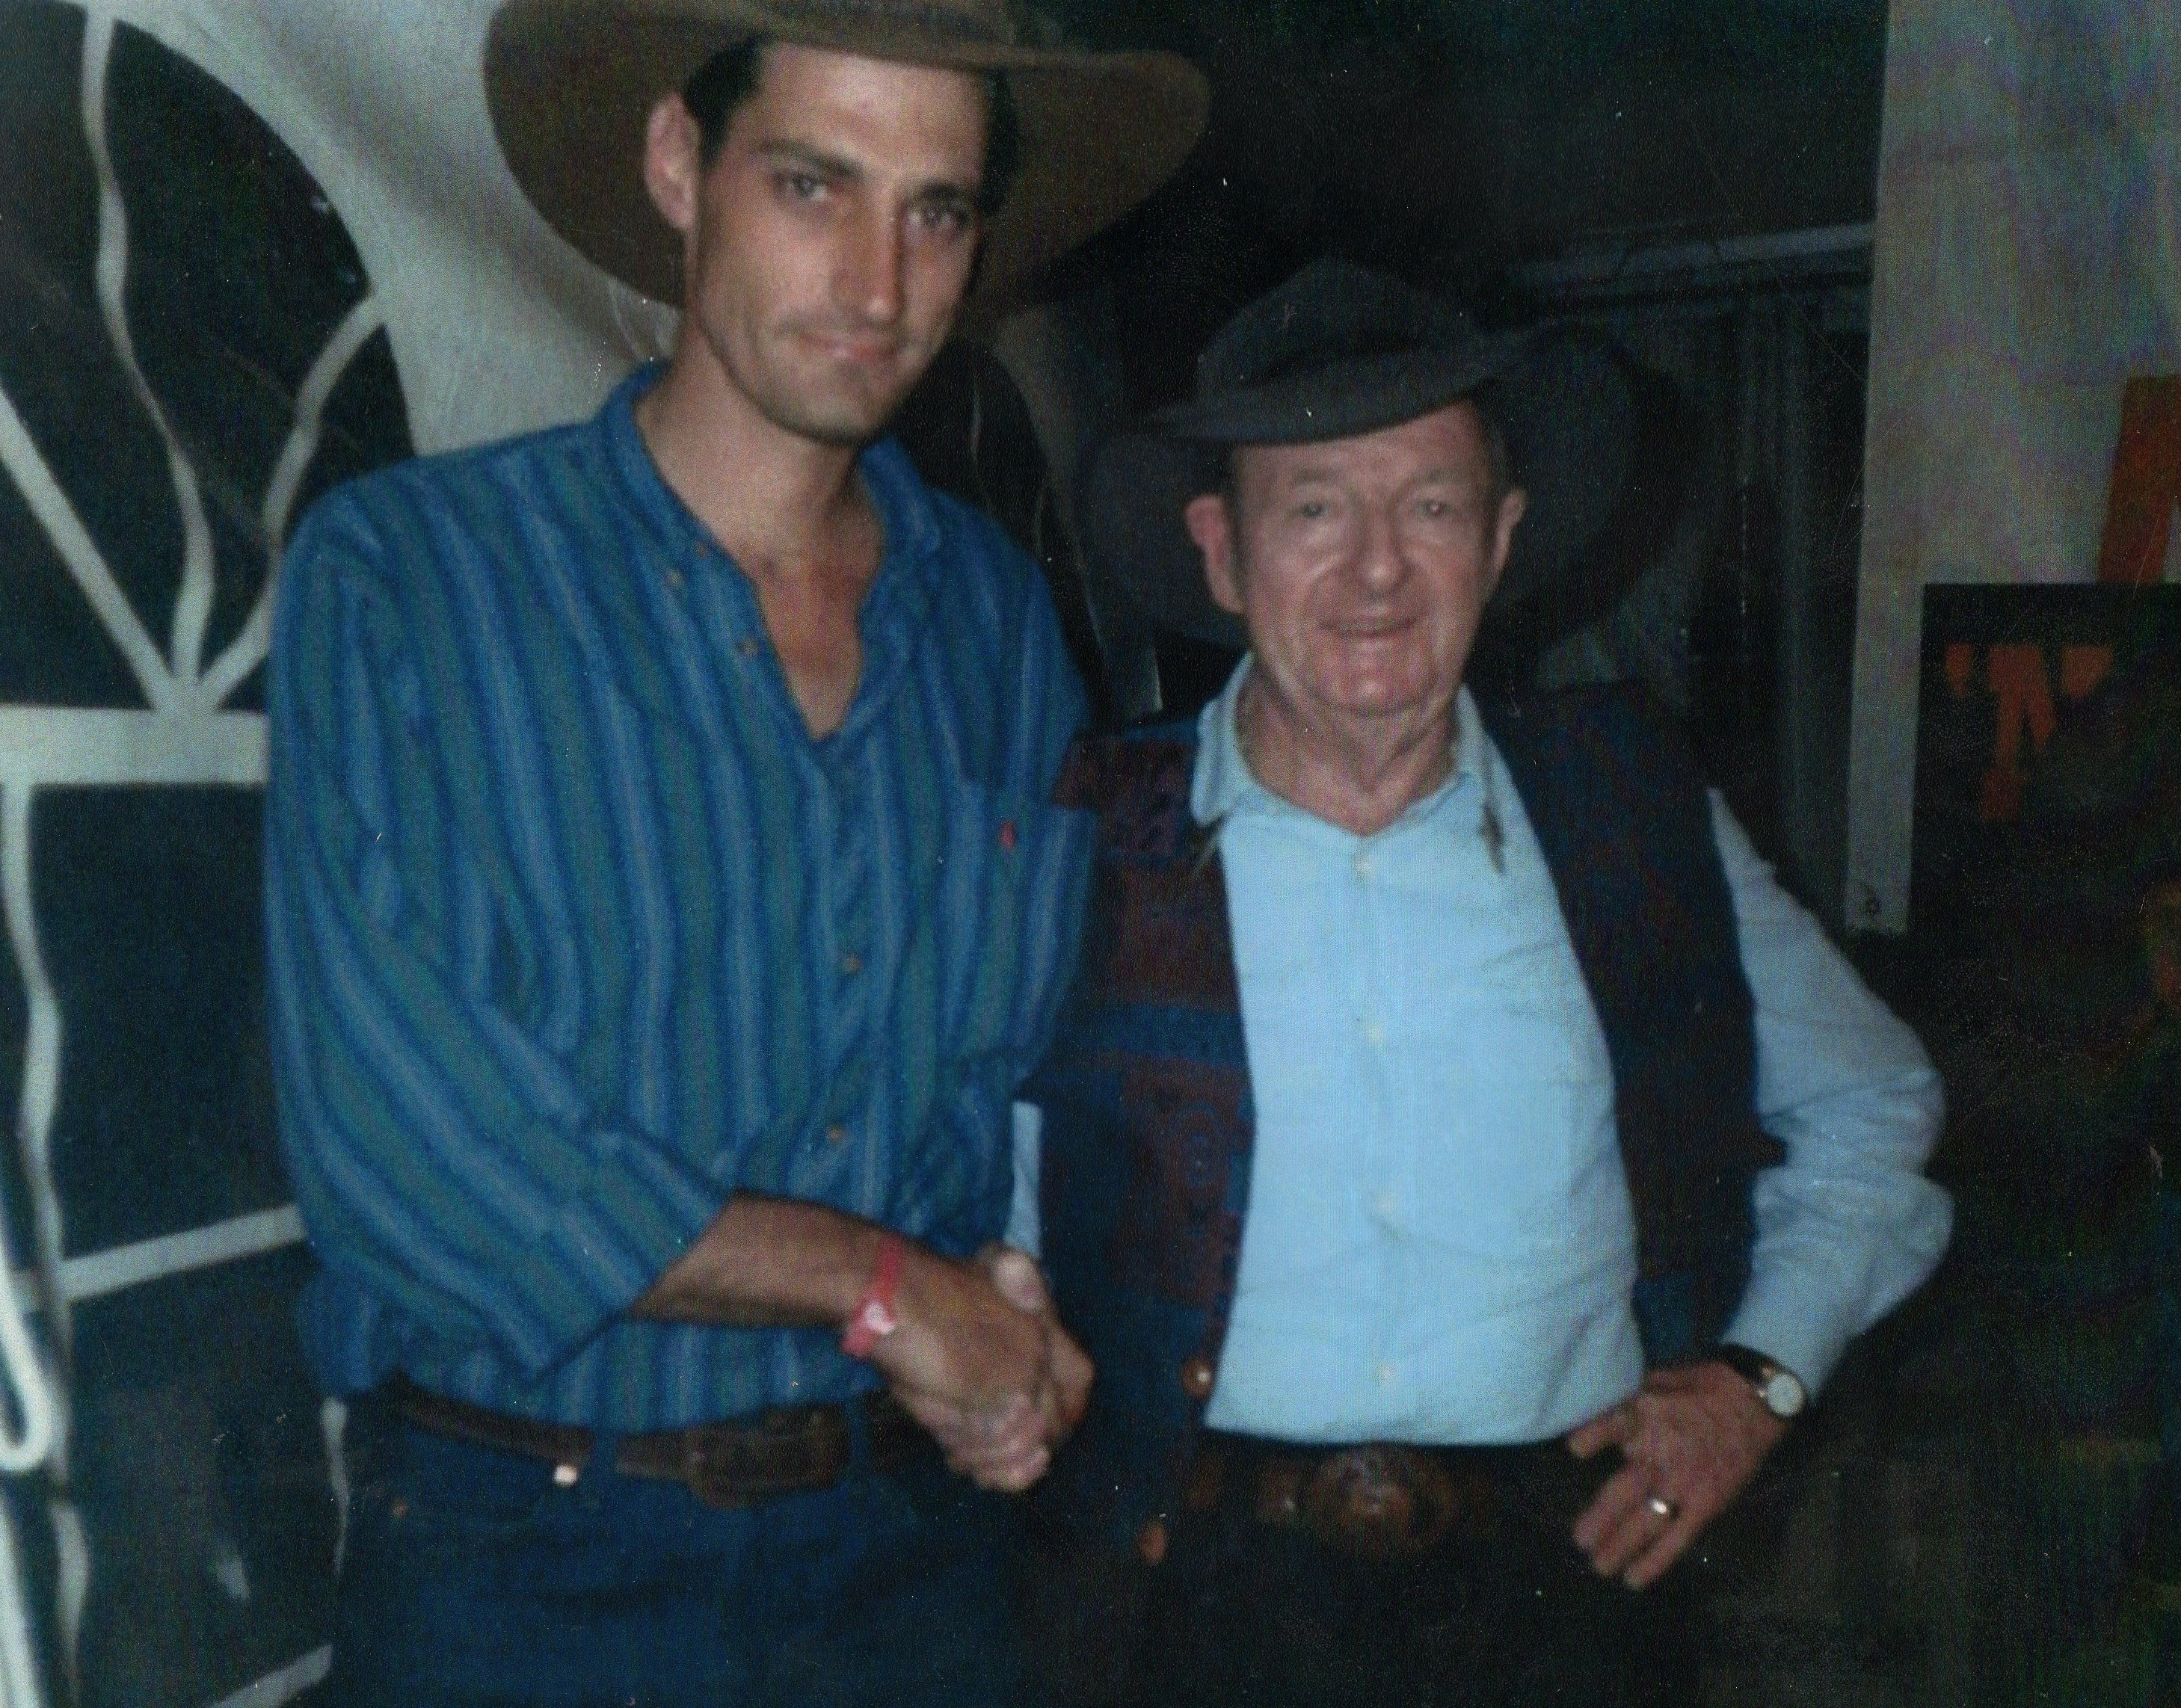 Glen and Slim Dusty